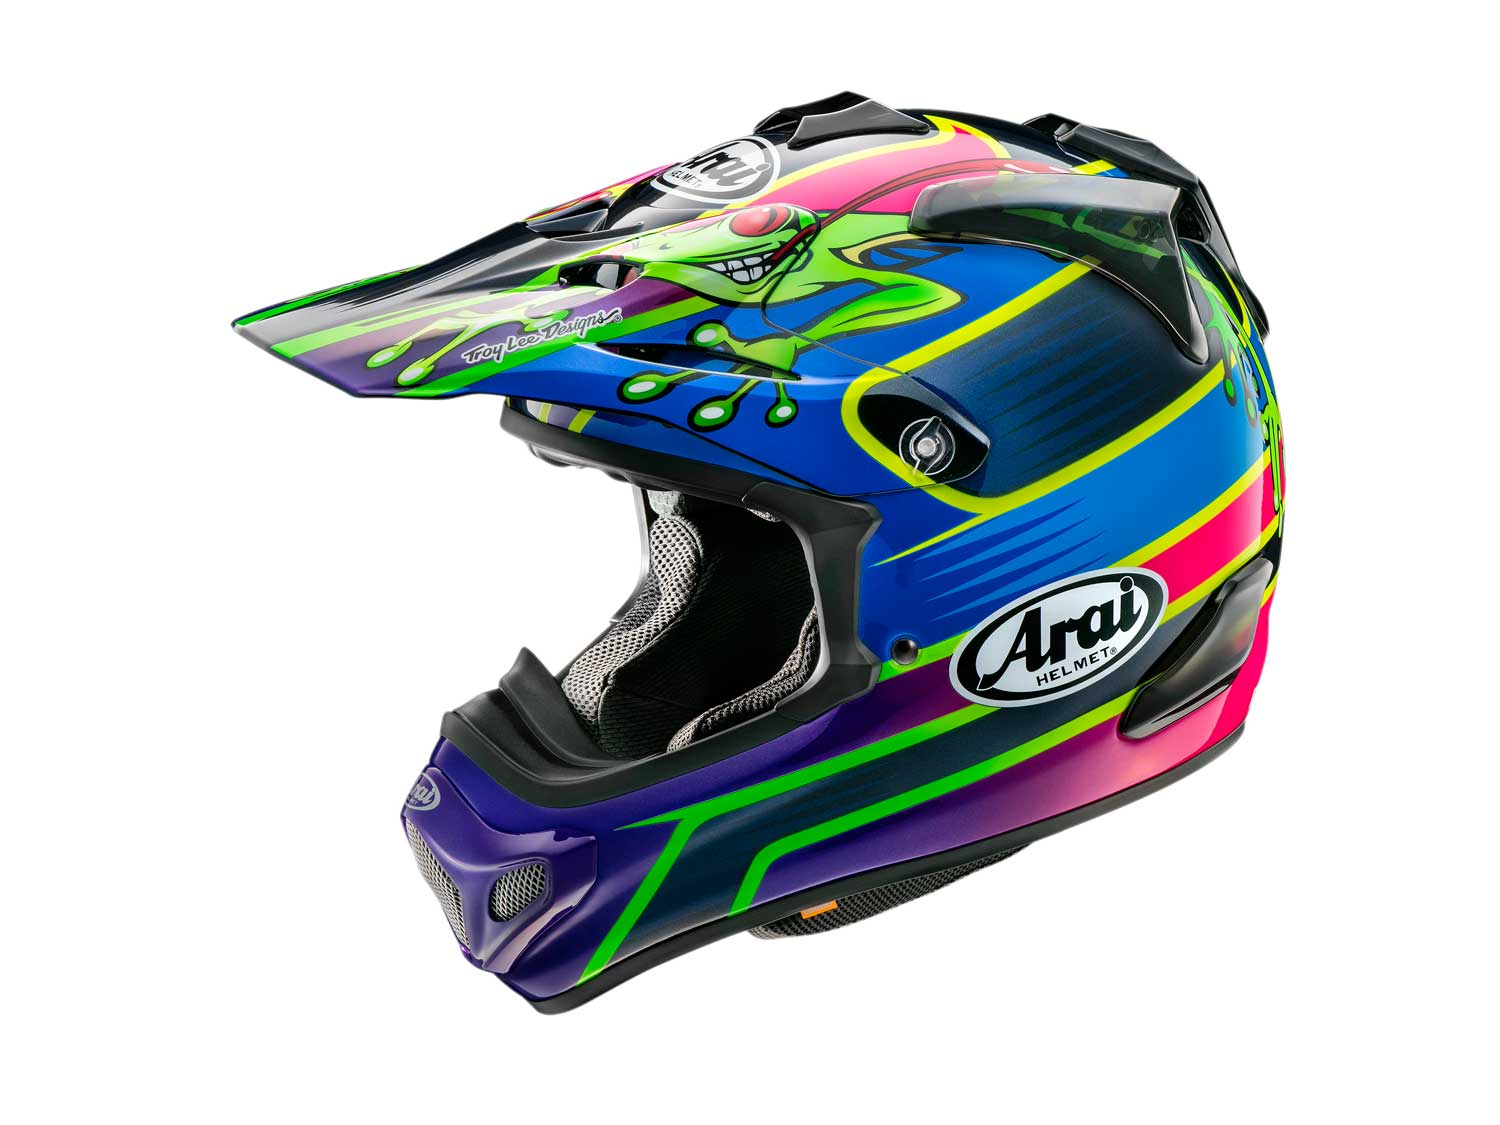 The Best Dirt Bike Helmets For Motocross And Off Road Riding Dirt Rider